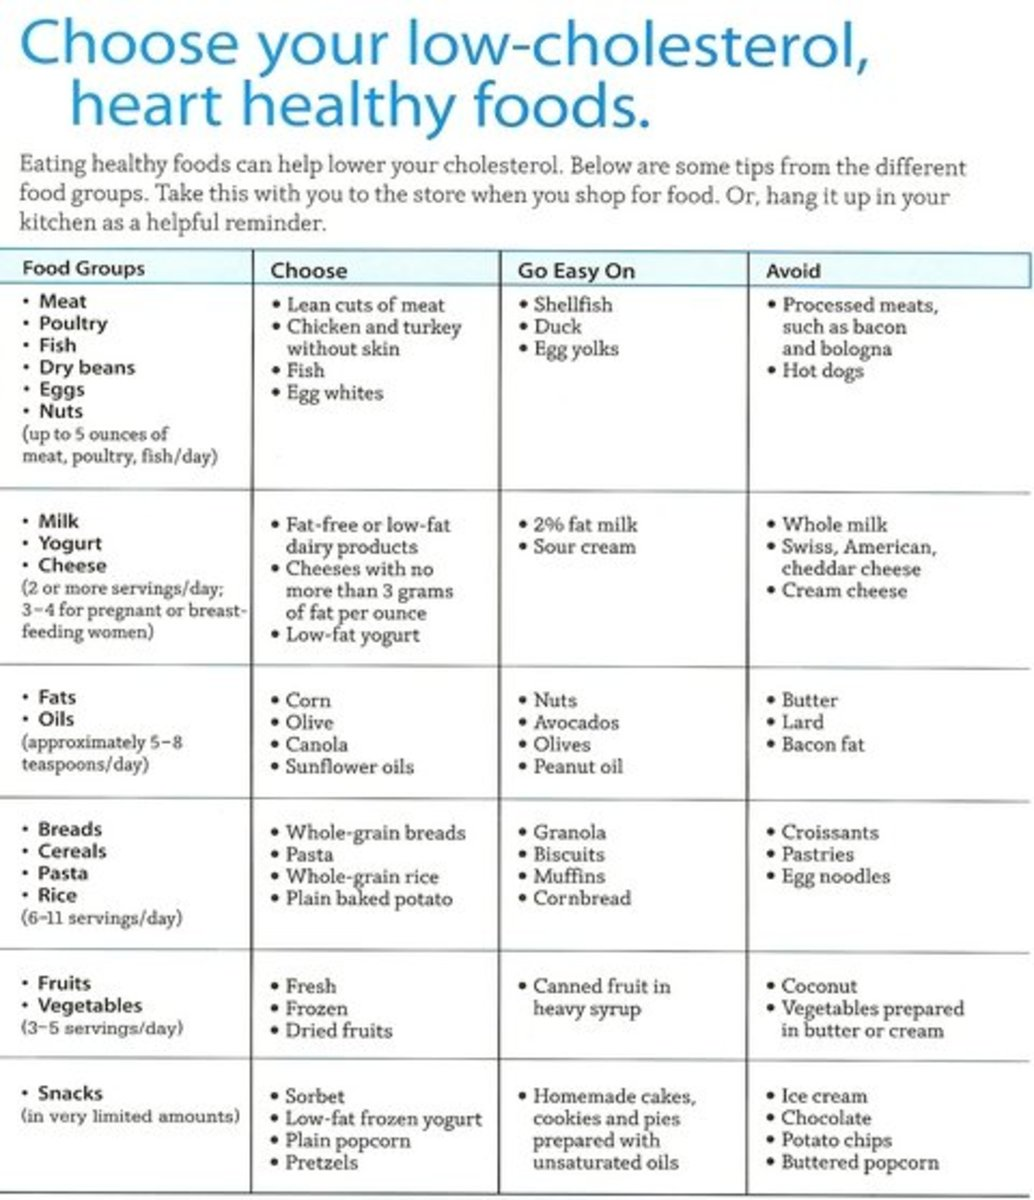 The benefits of eating a low cholesterol diet